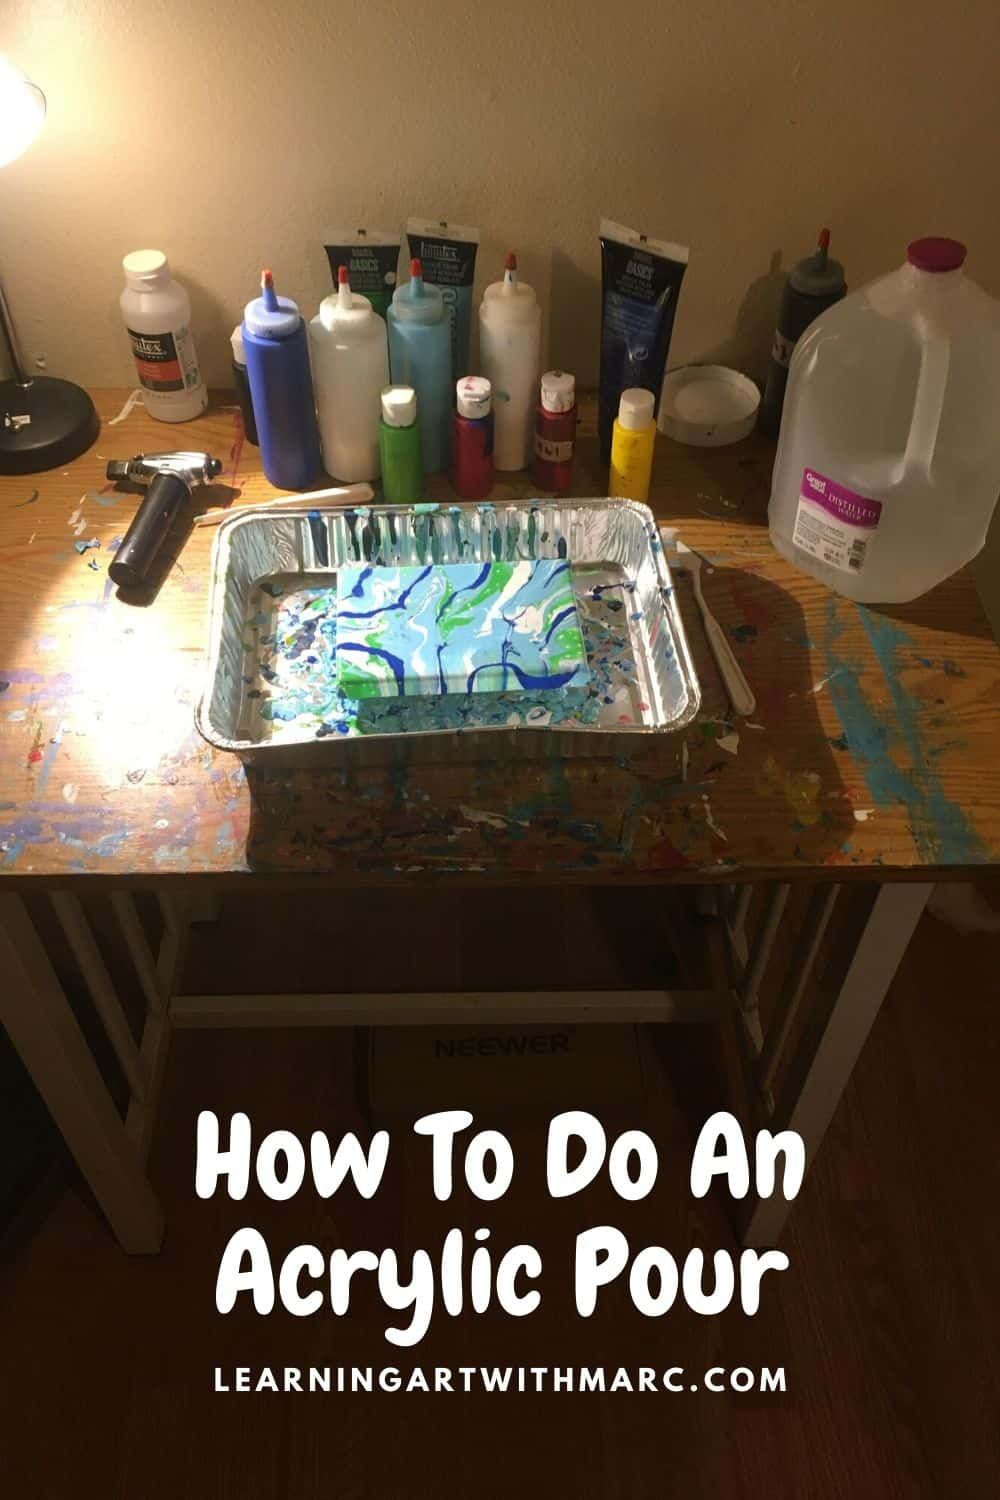 How to do an acrylic pour come learn about art with me